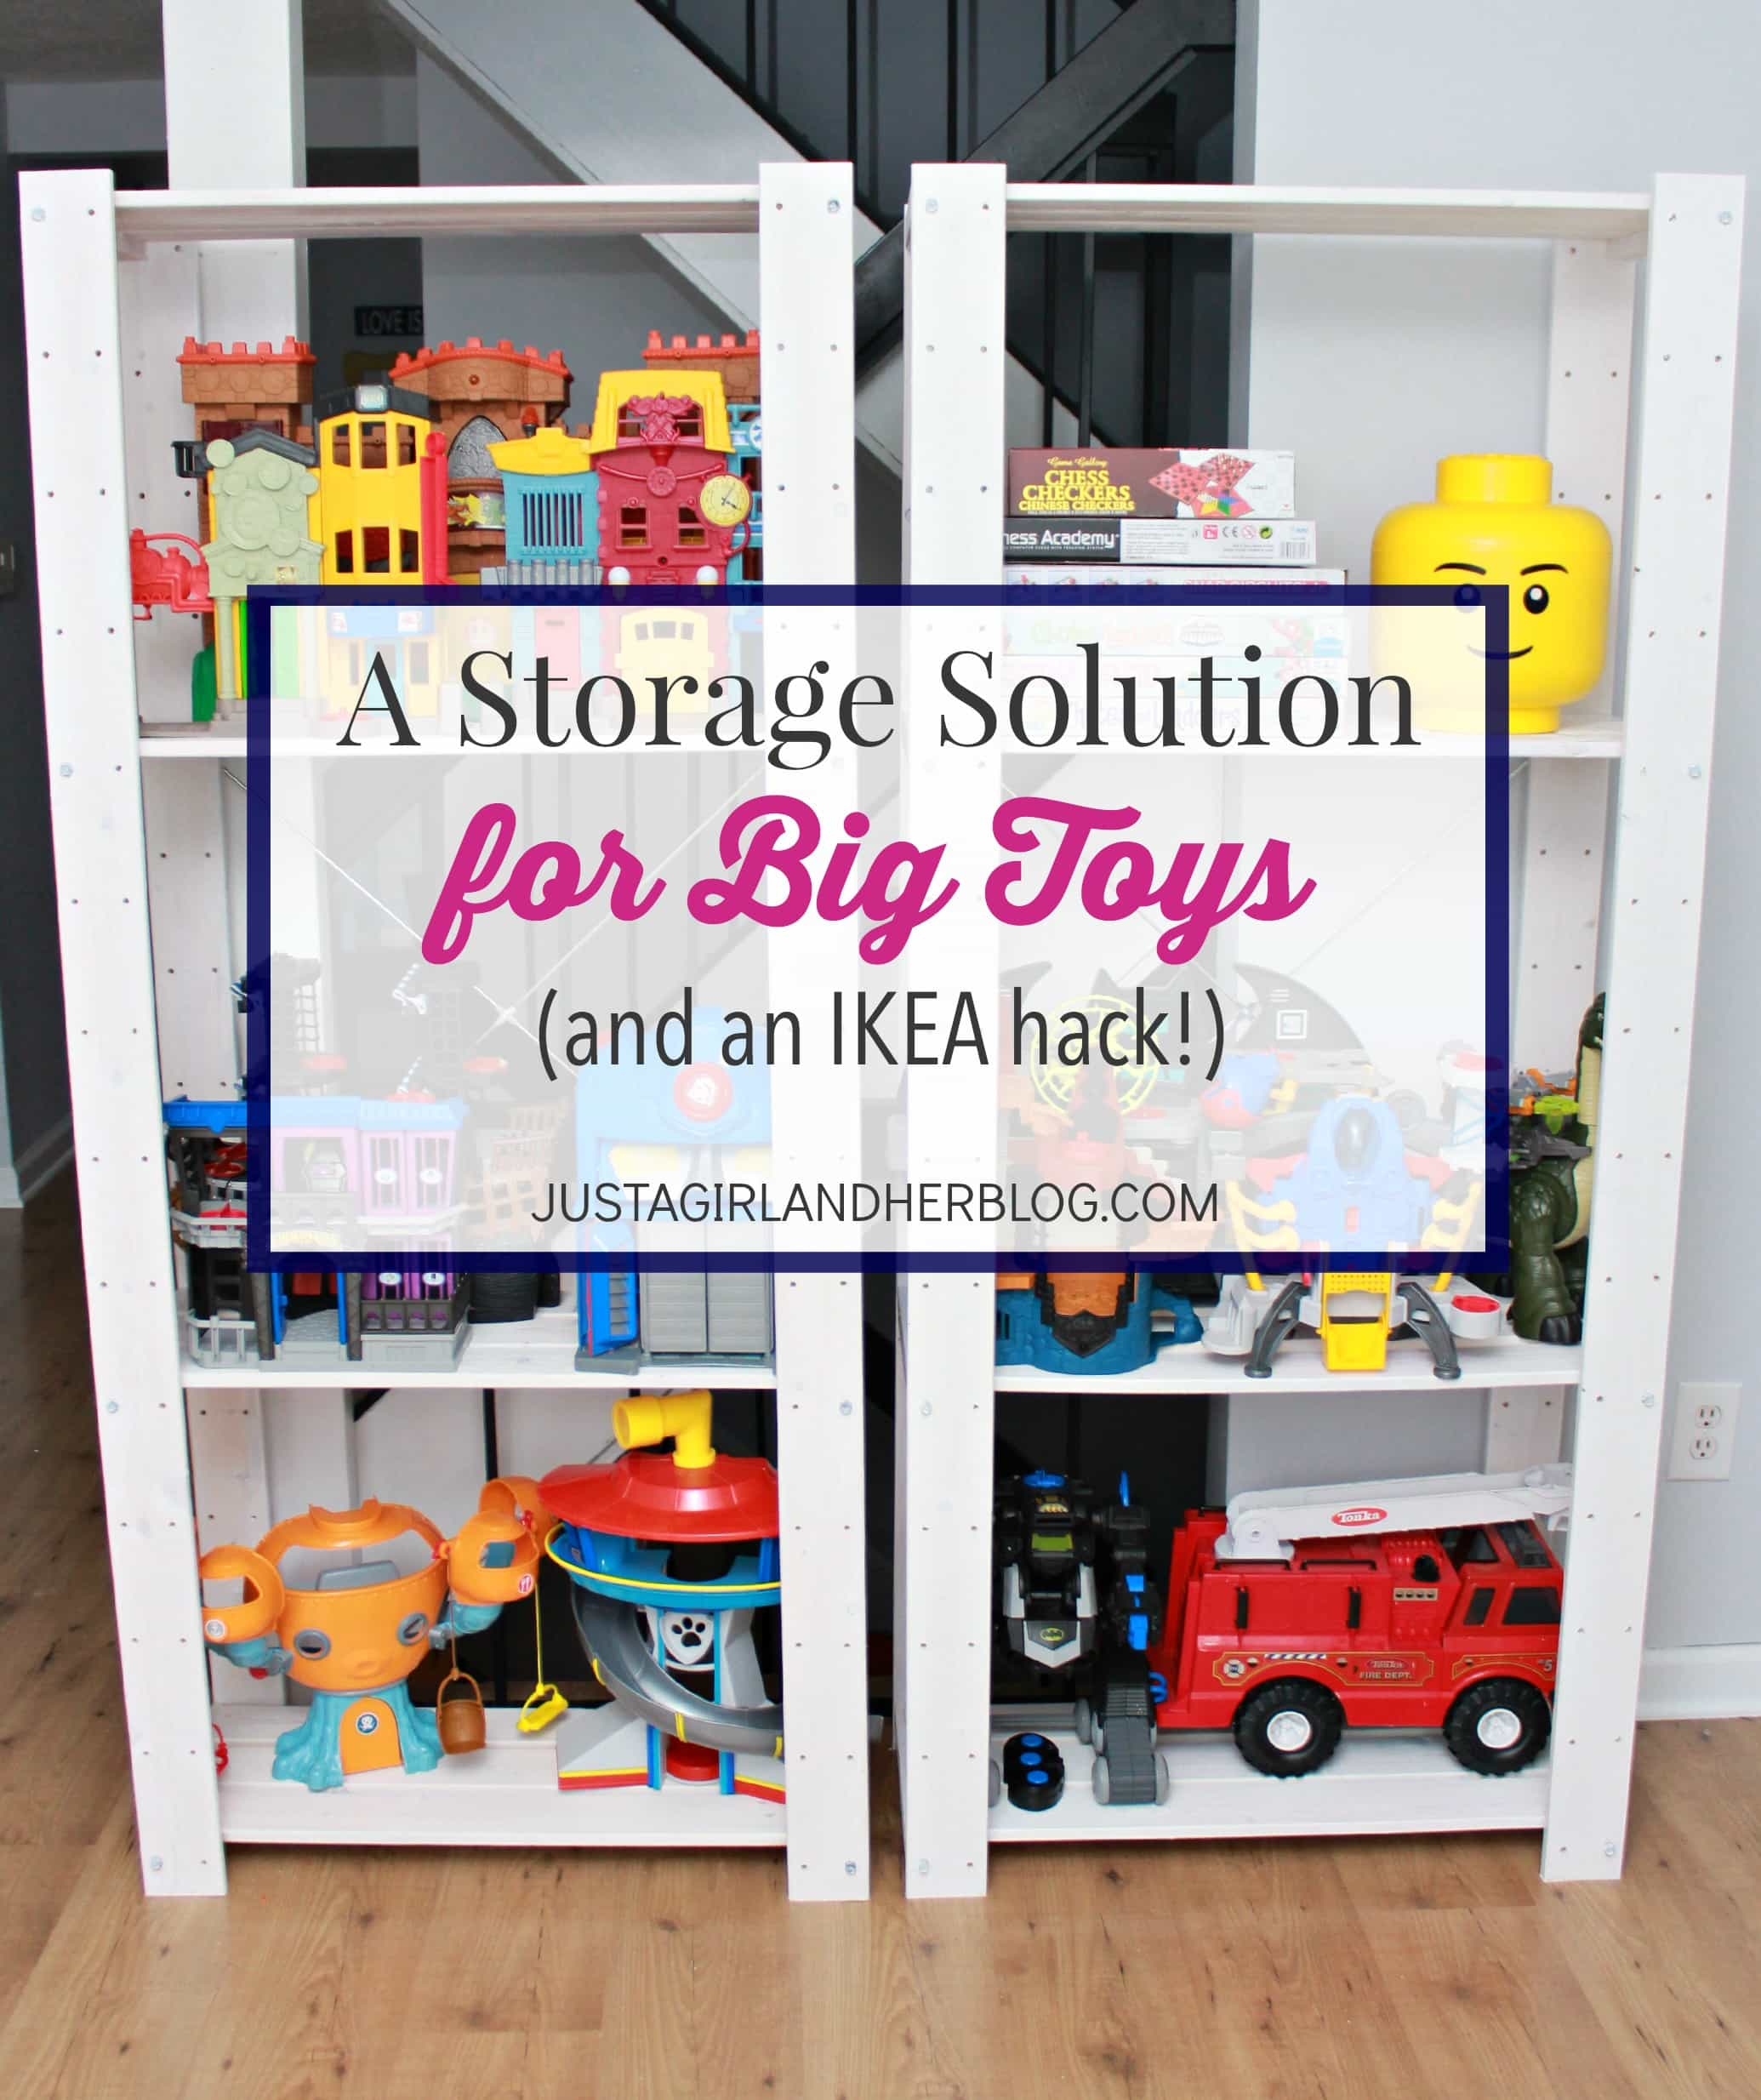 graphic regarding Justagirlandherblog named A Storage Strategy for Massive Toys and an IKEA hack! Abby